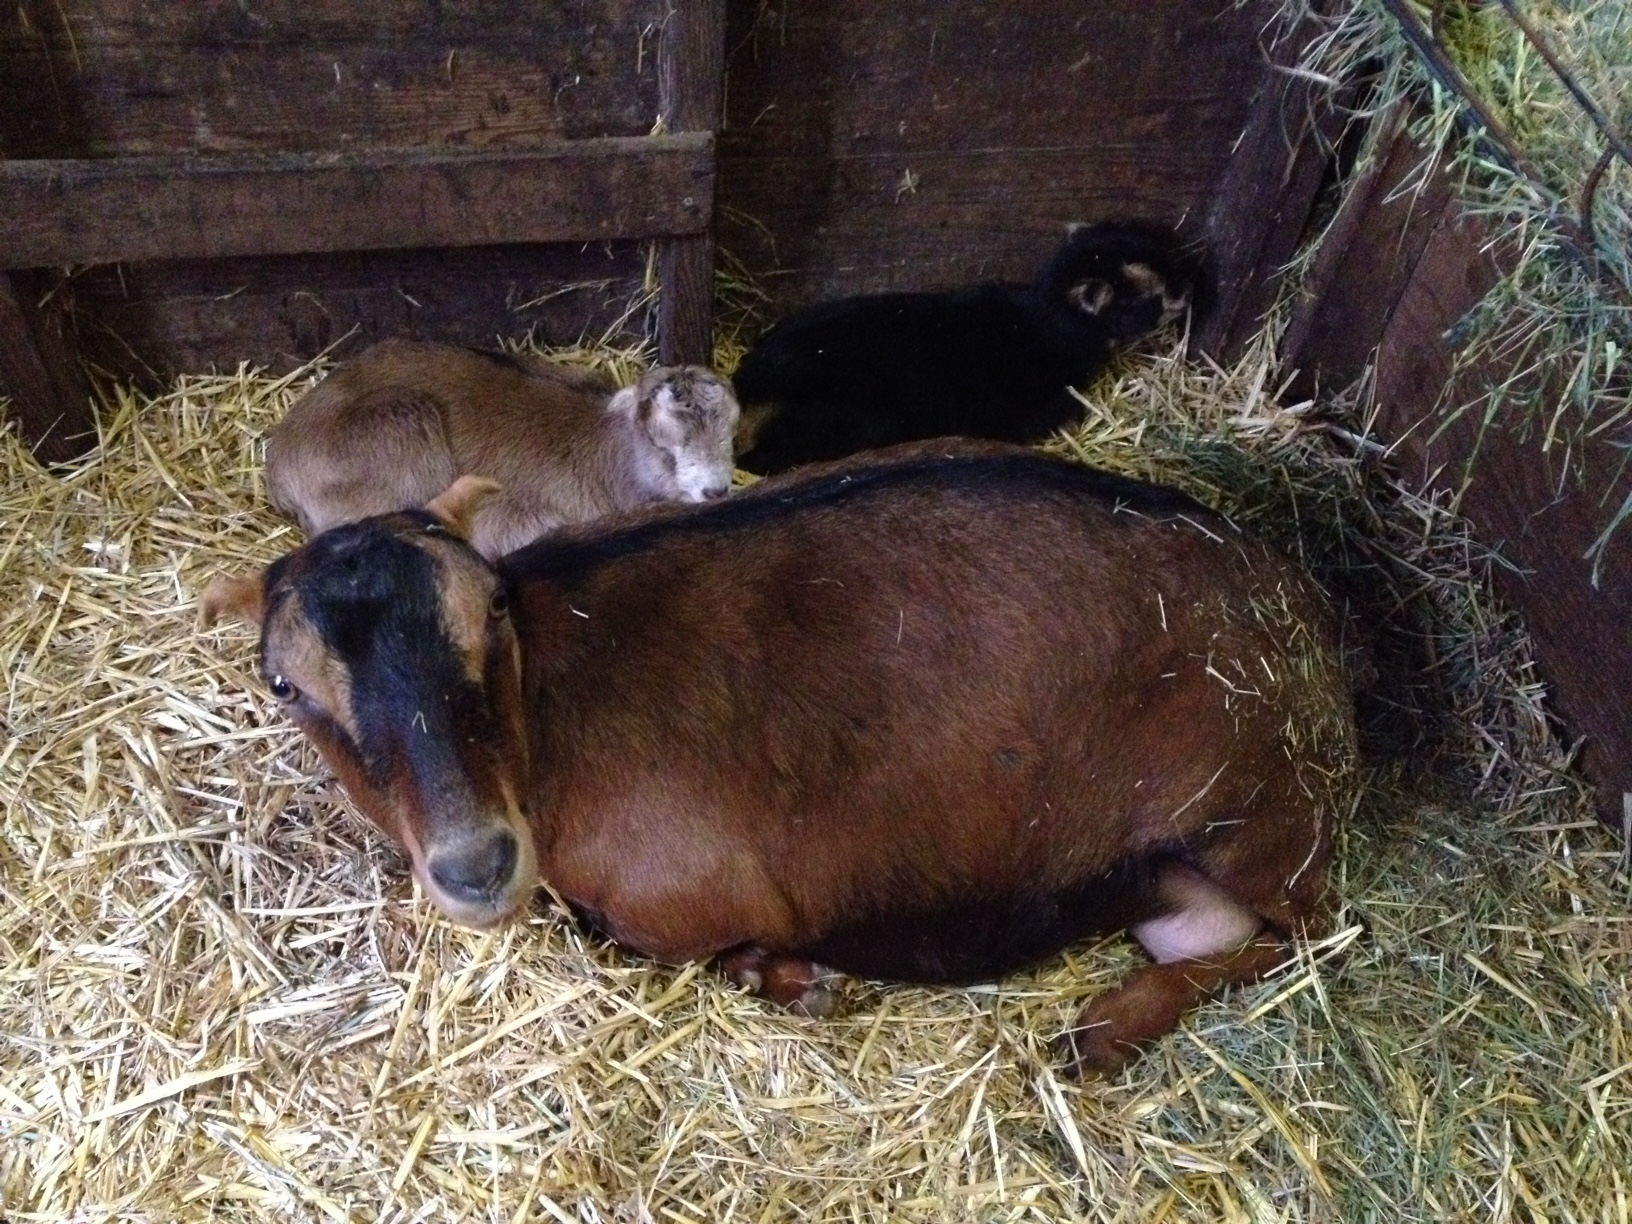 Eula and her twins in their first days